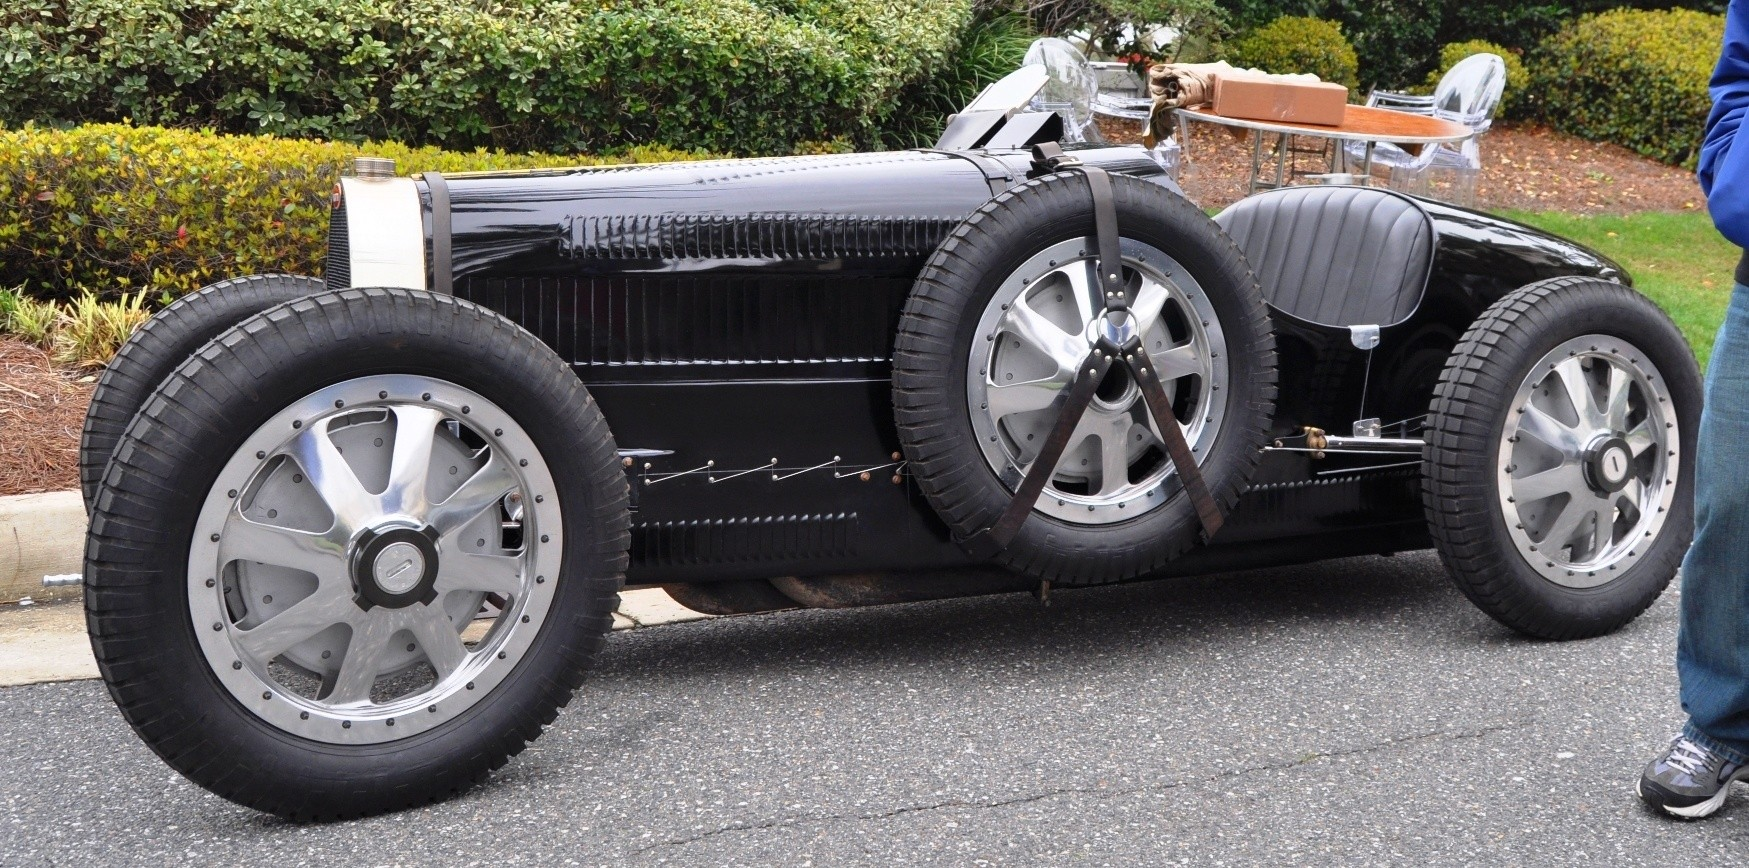 PurSang Argentina Shows Innovative Marketing with Street-Parked 1920s Bugatti GP Car8